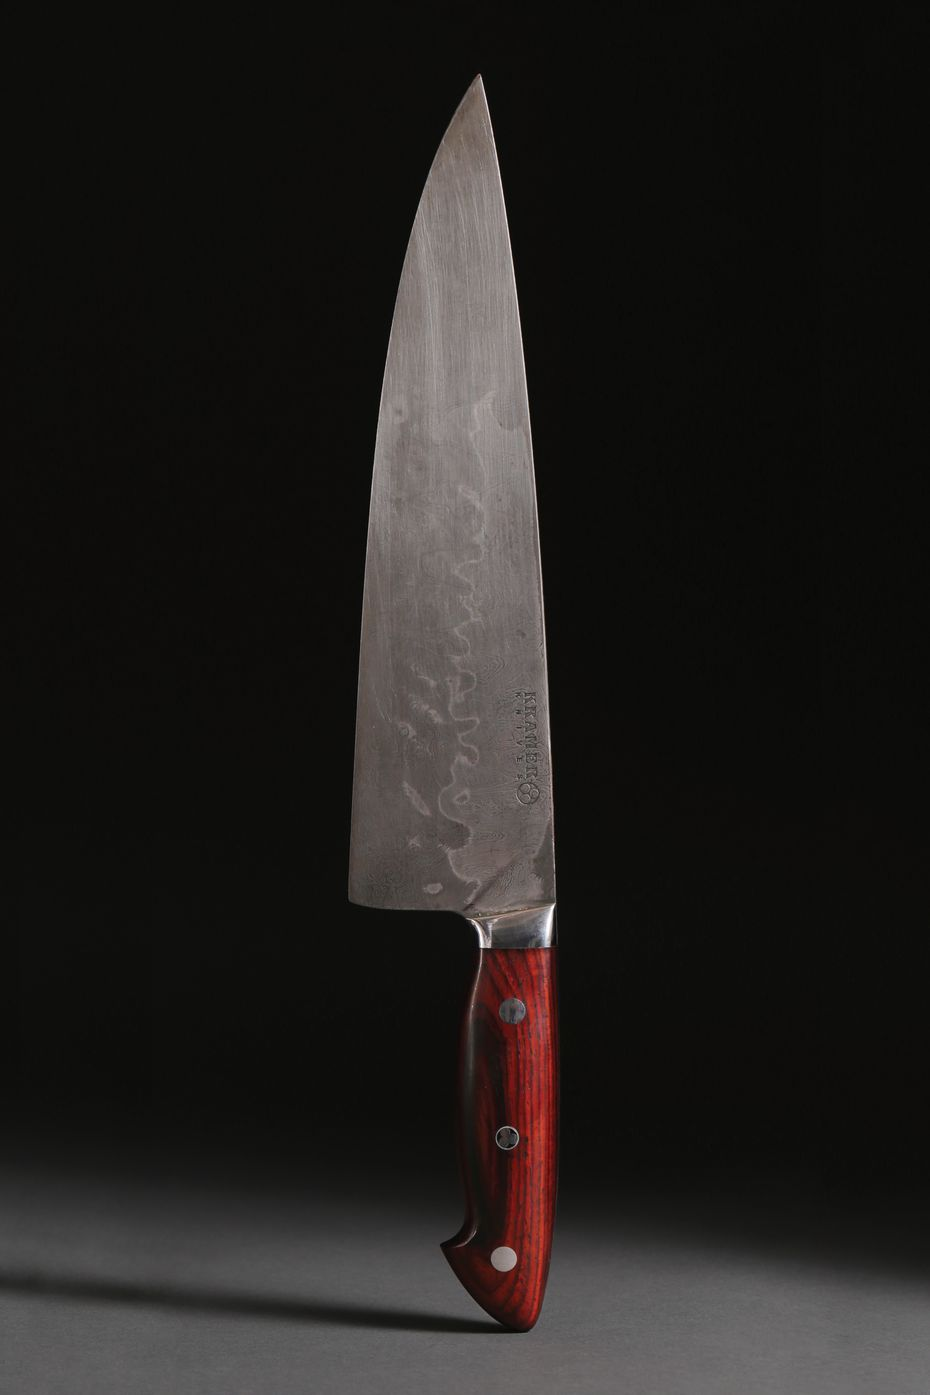 One of the highest-dollar items in the Anthony Bourdain auction collection is a custom-made knife.